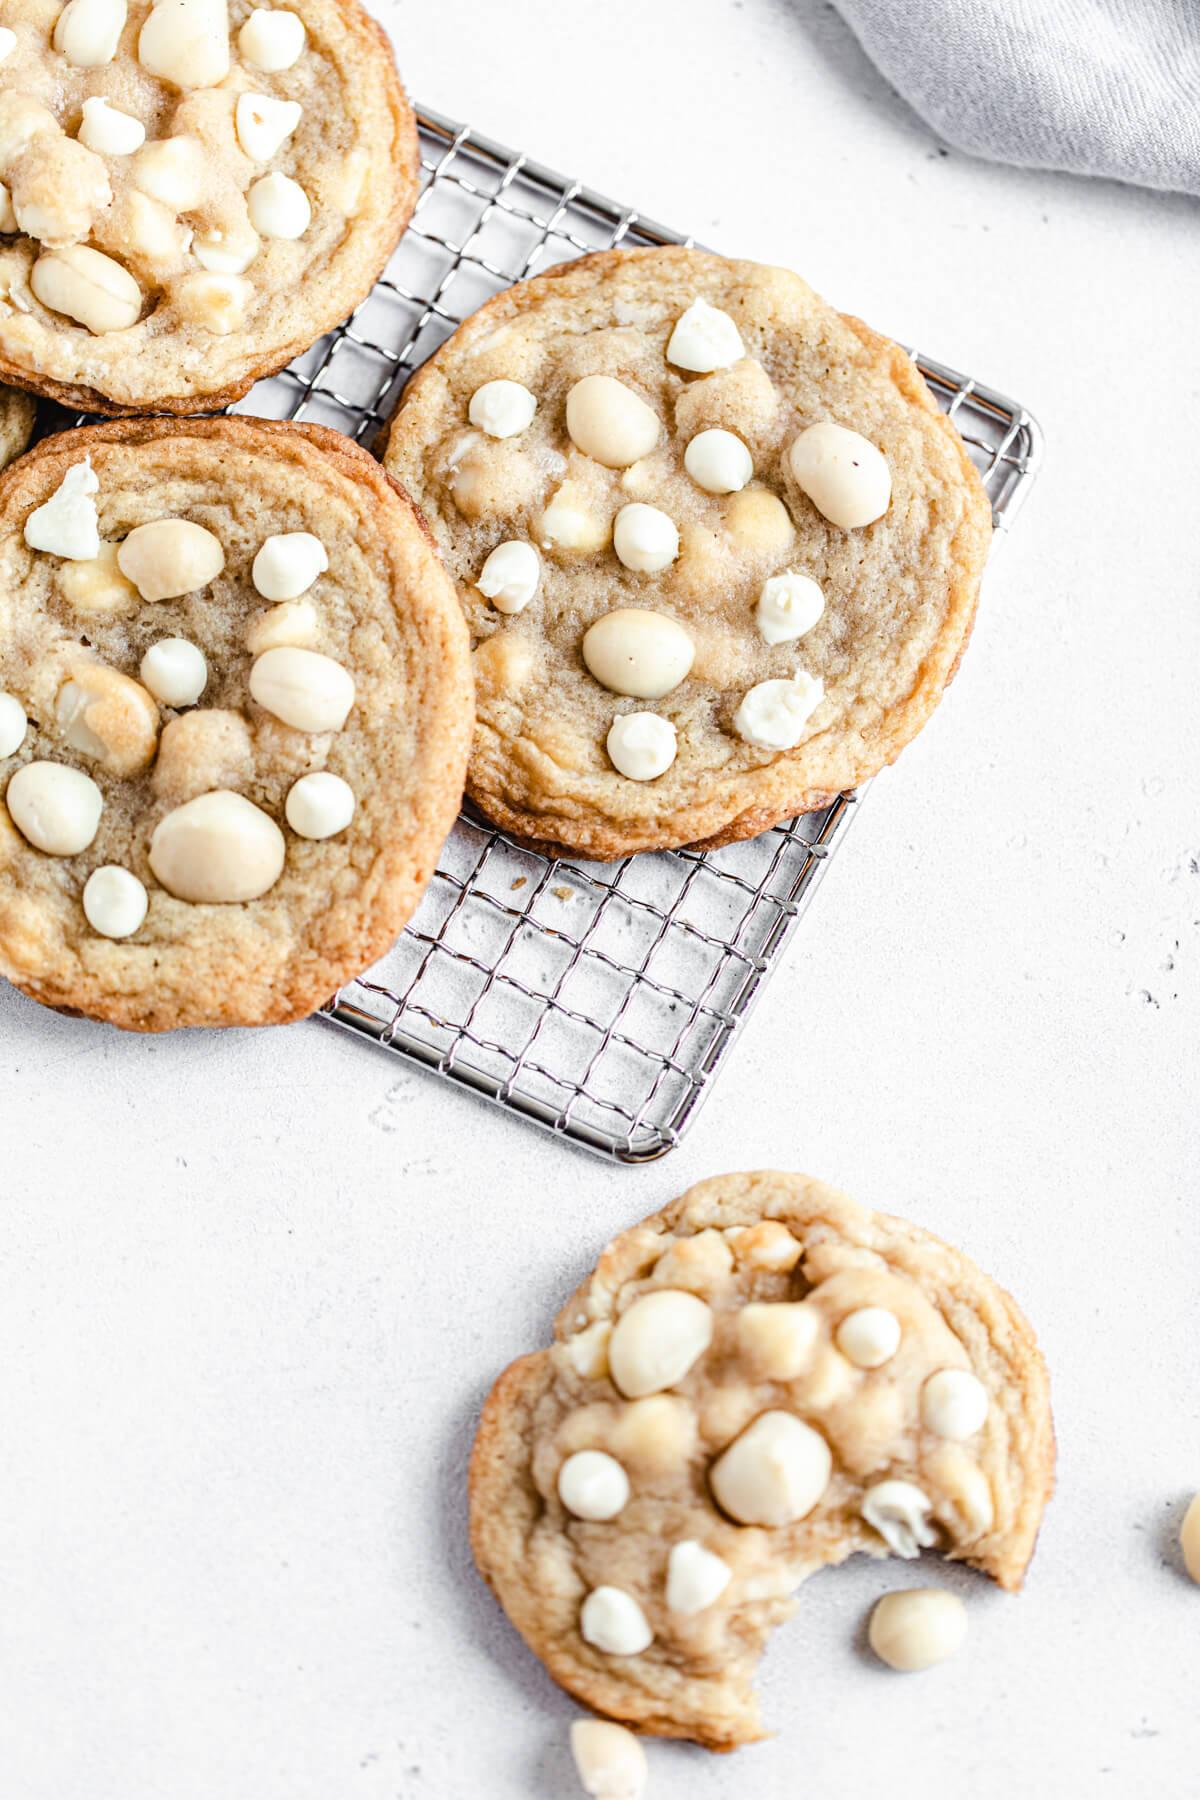 cookies on a safety grater